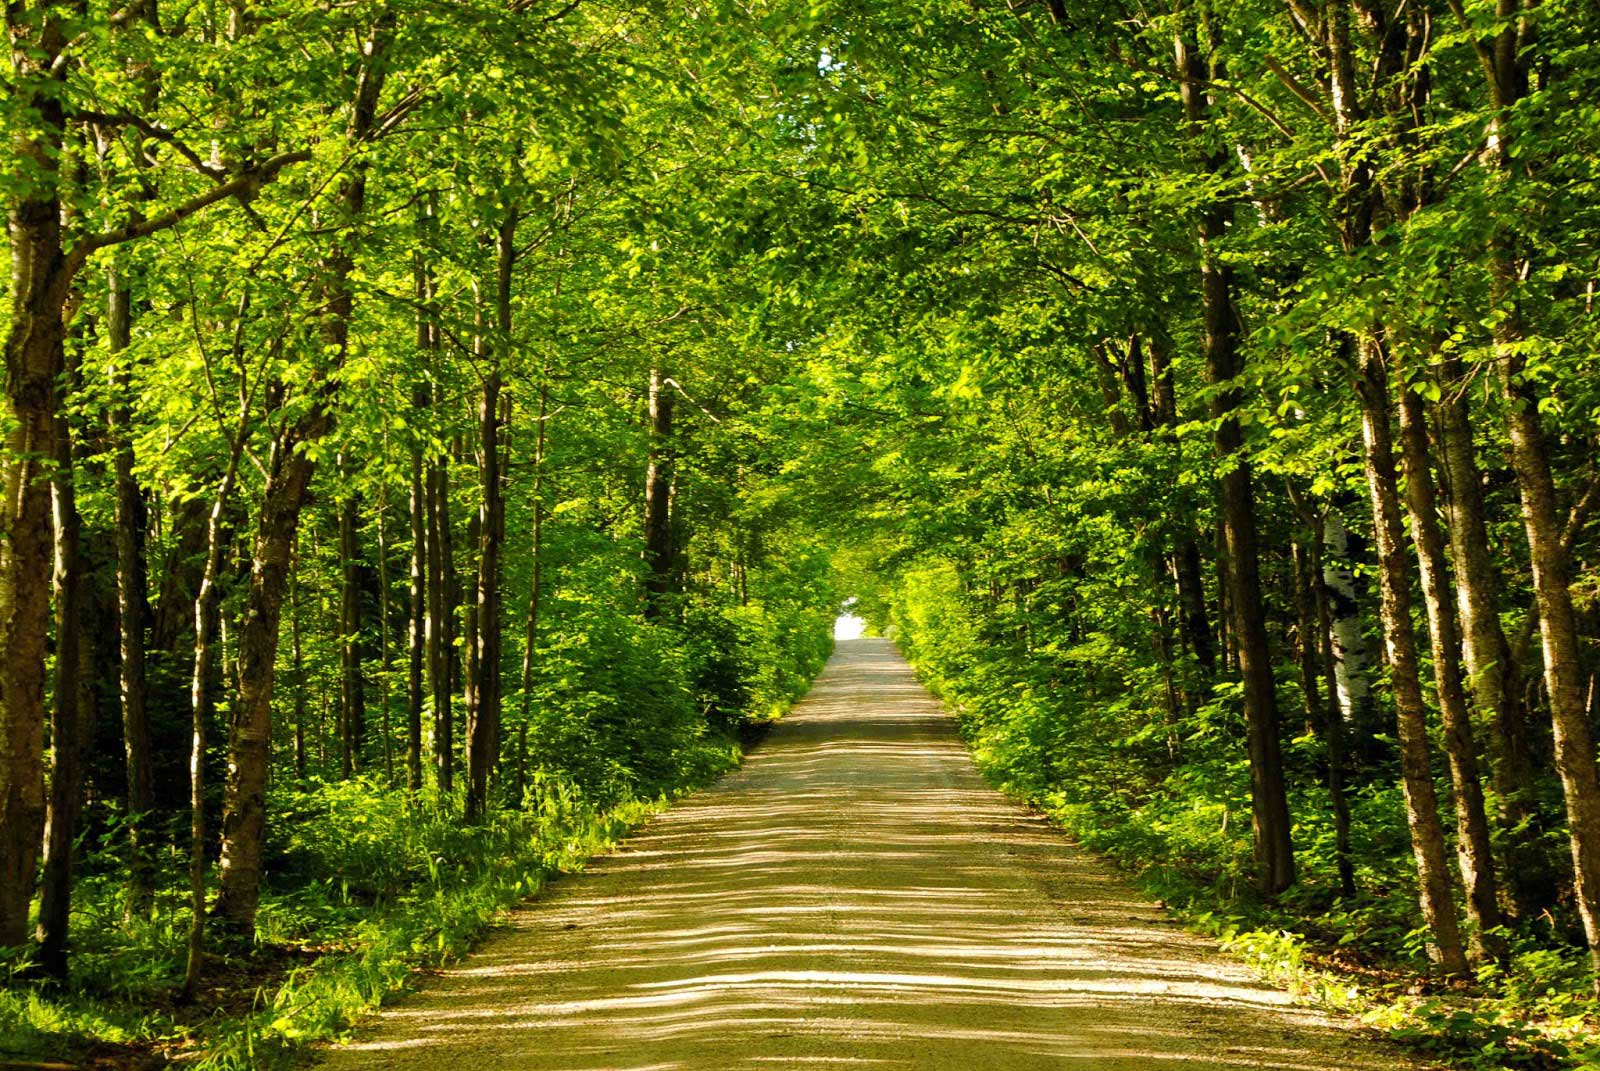 Wooded path in Zachary, LA